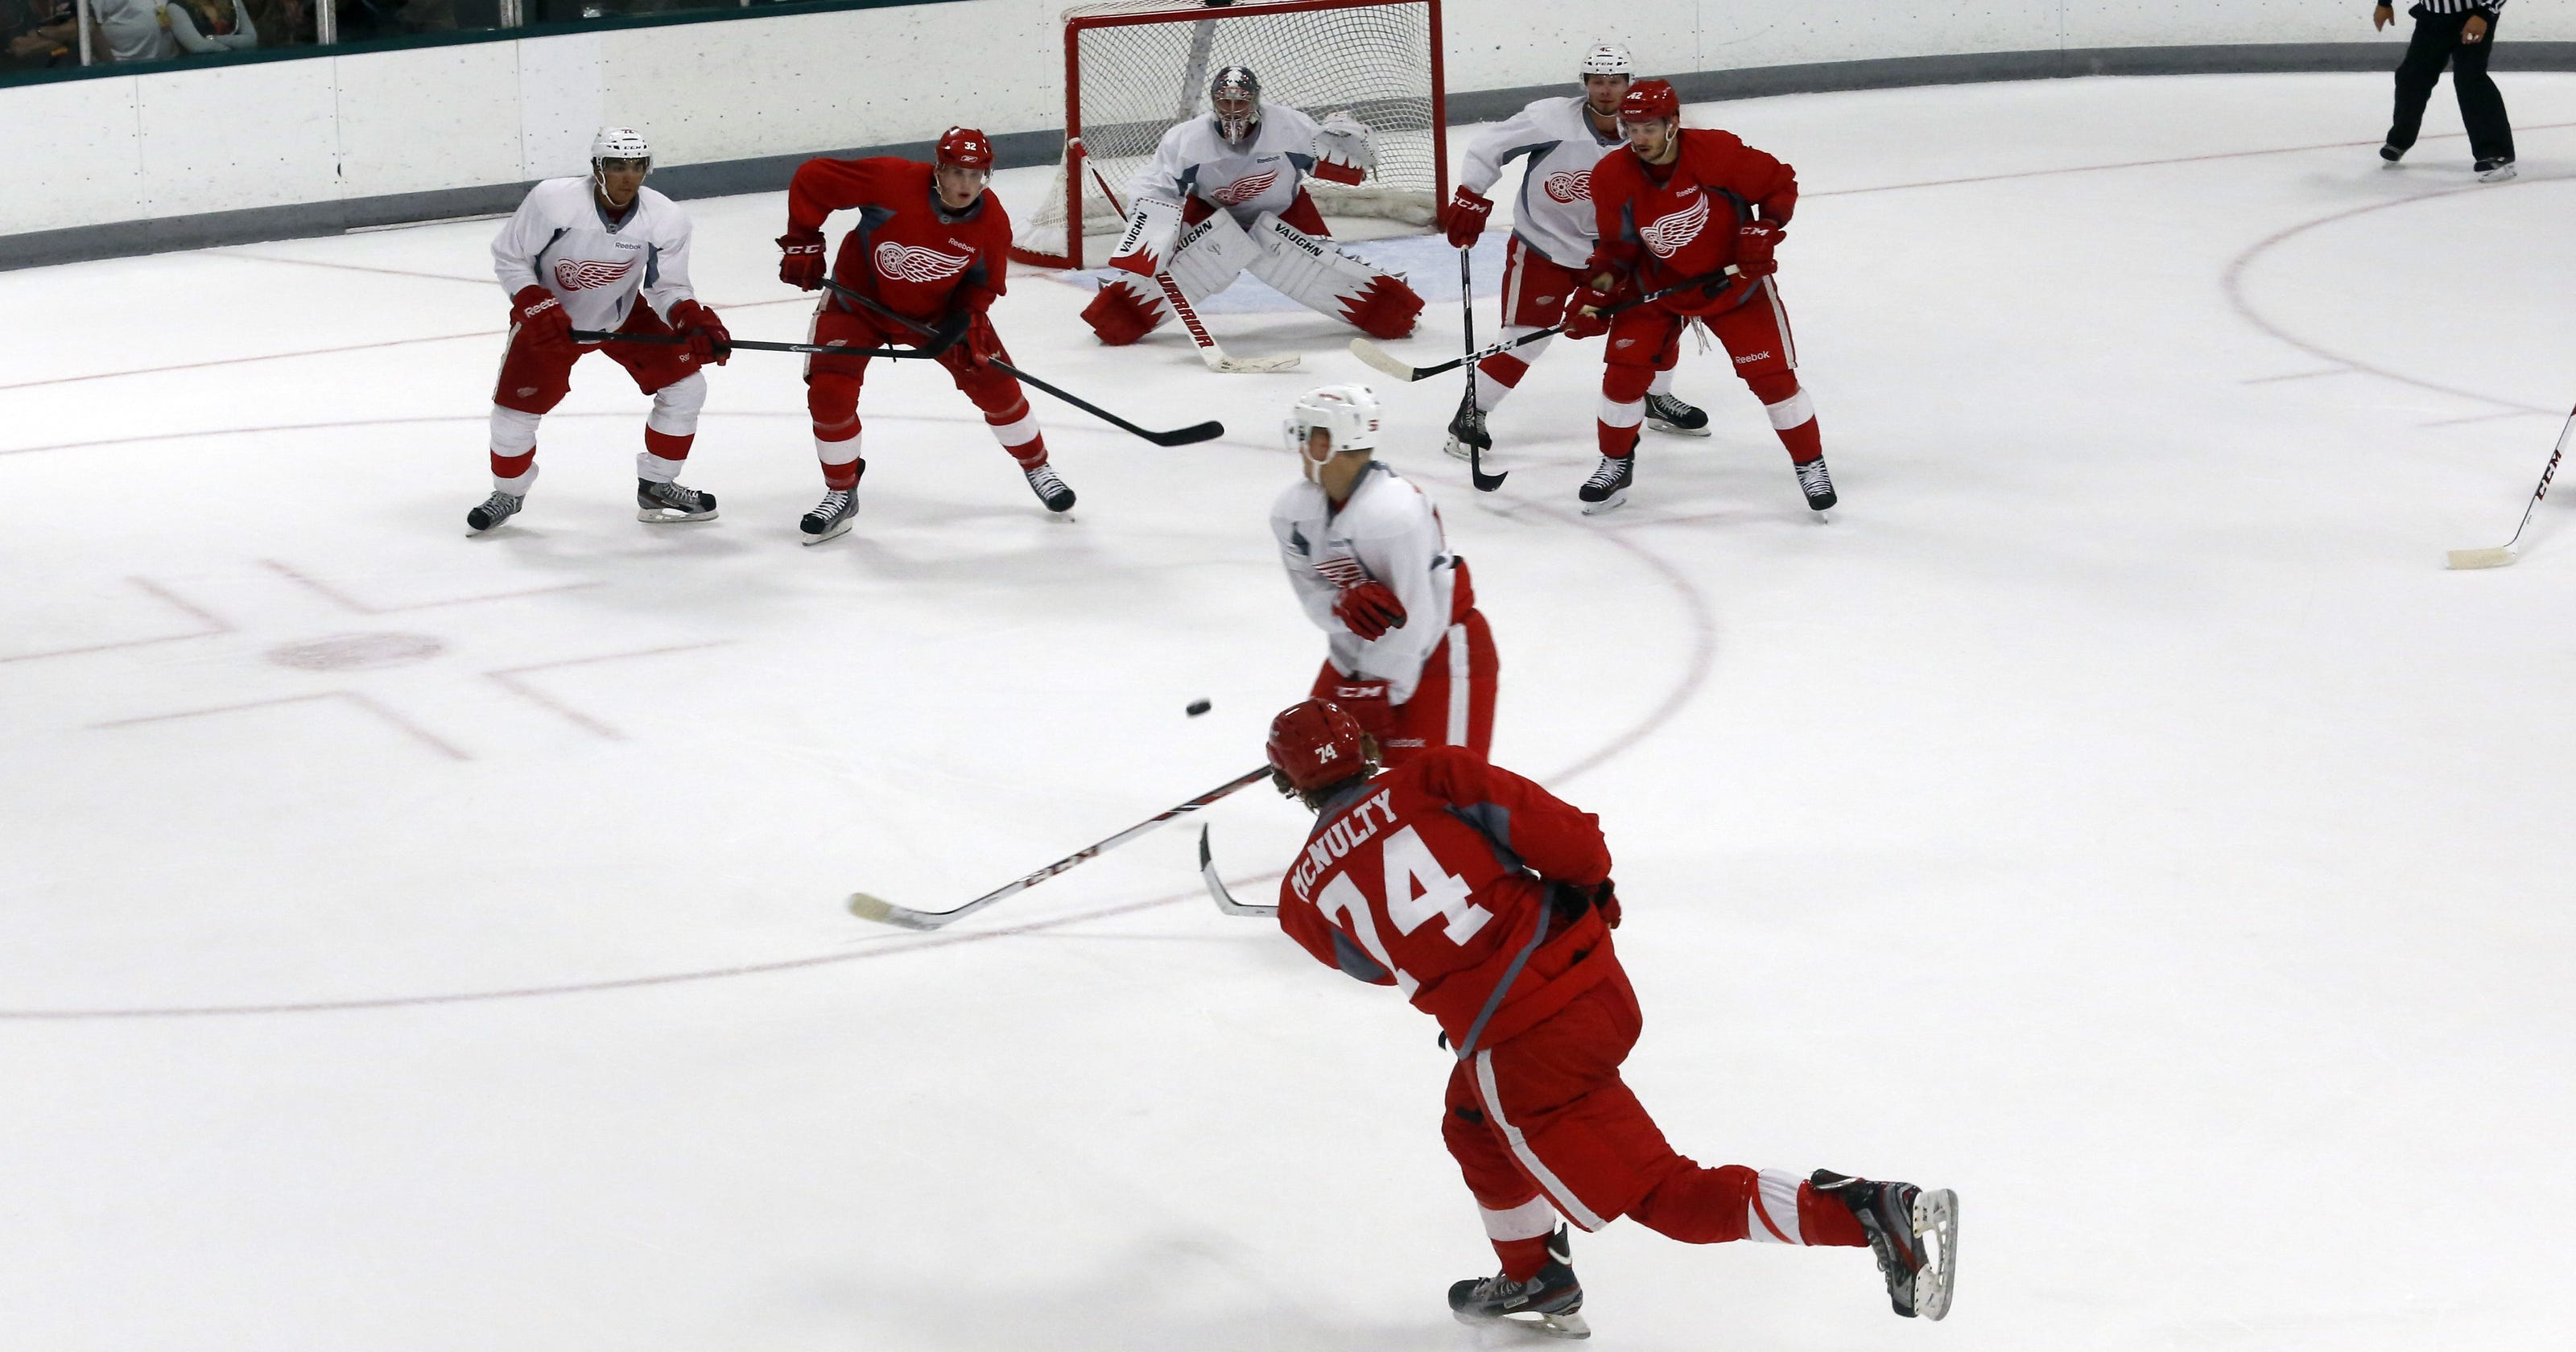 ff2ddb71542 Detroit Red Wings name trophy after late CapGeek founder